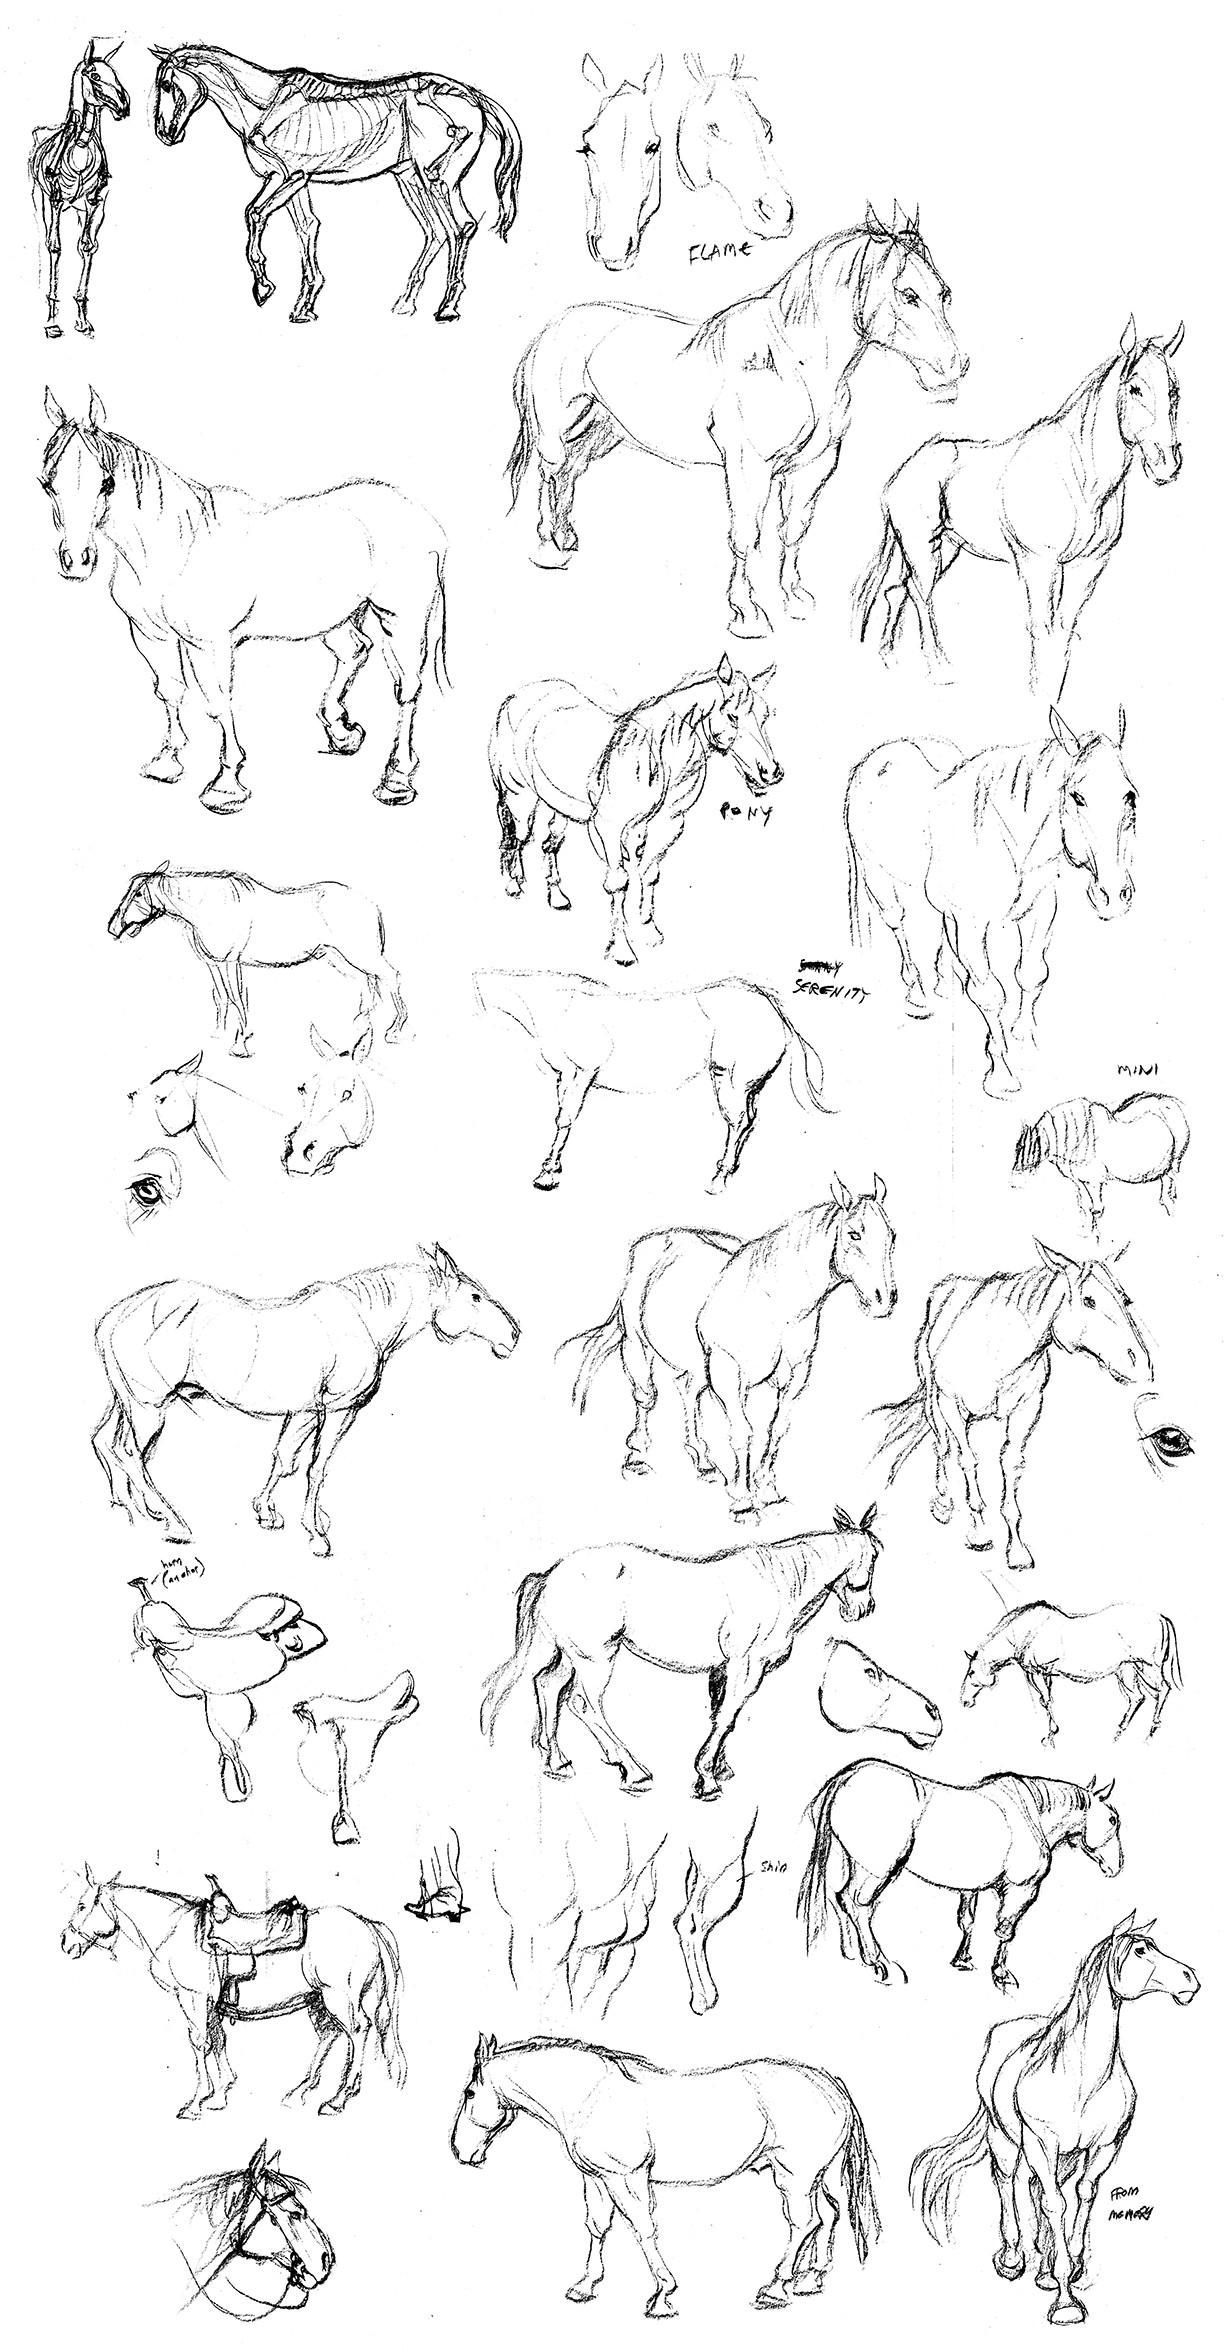 Matt rhodes horselifedrawing2016 small